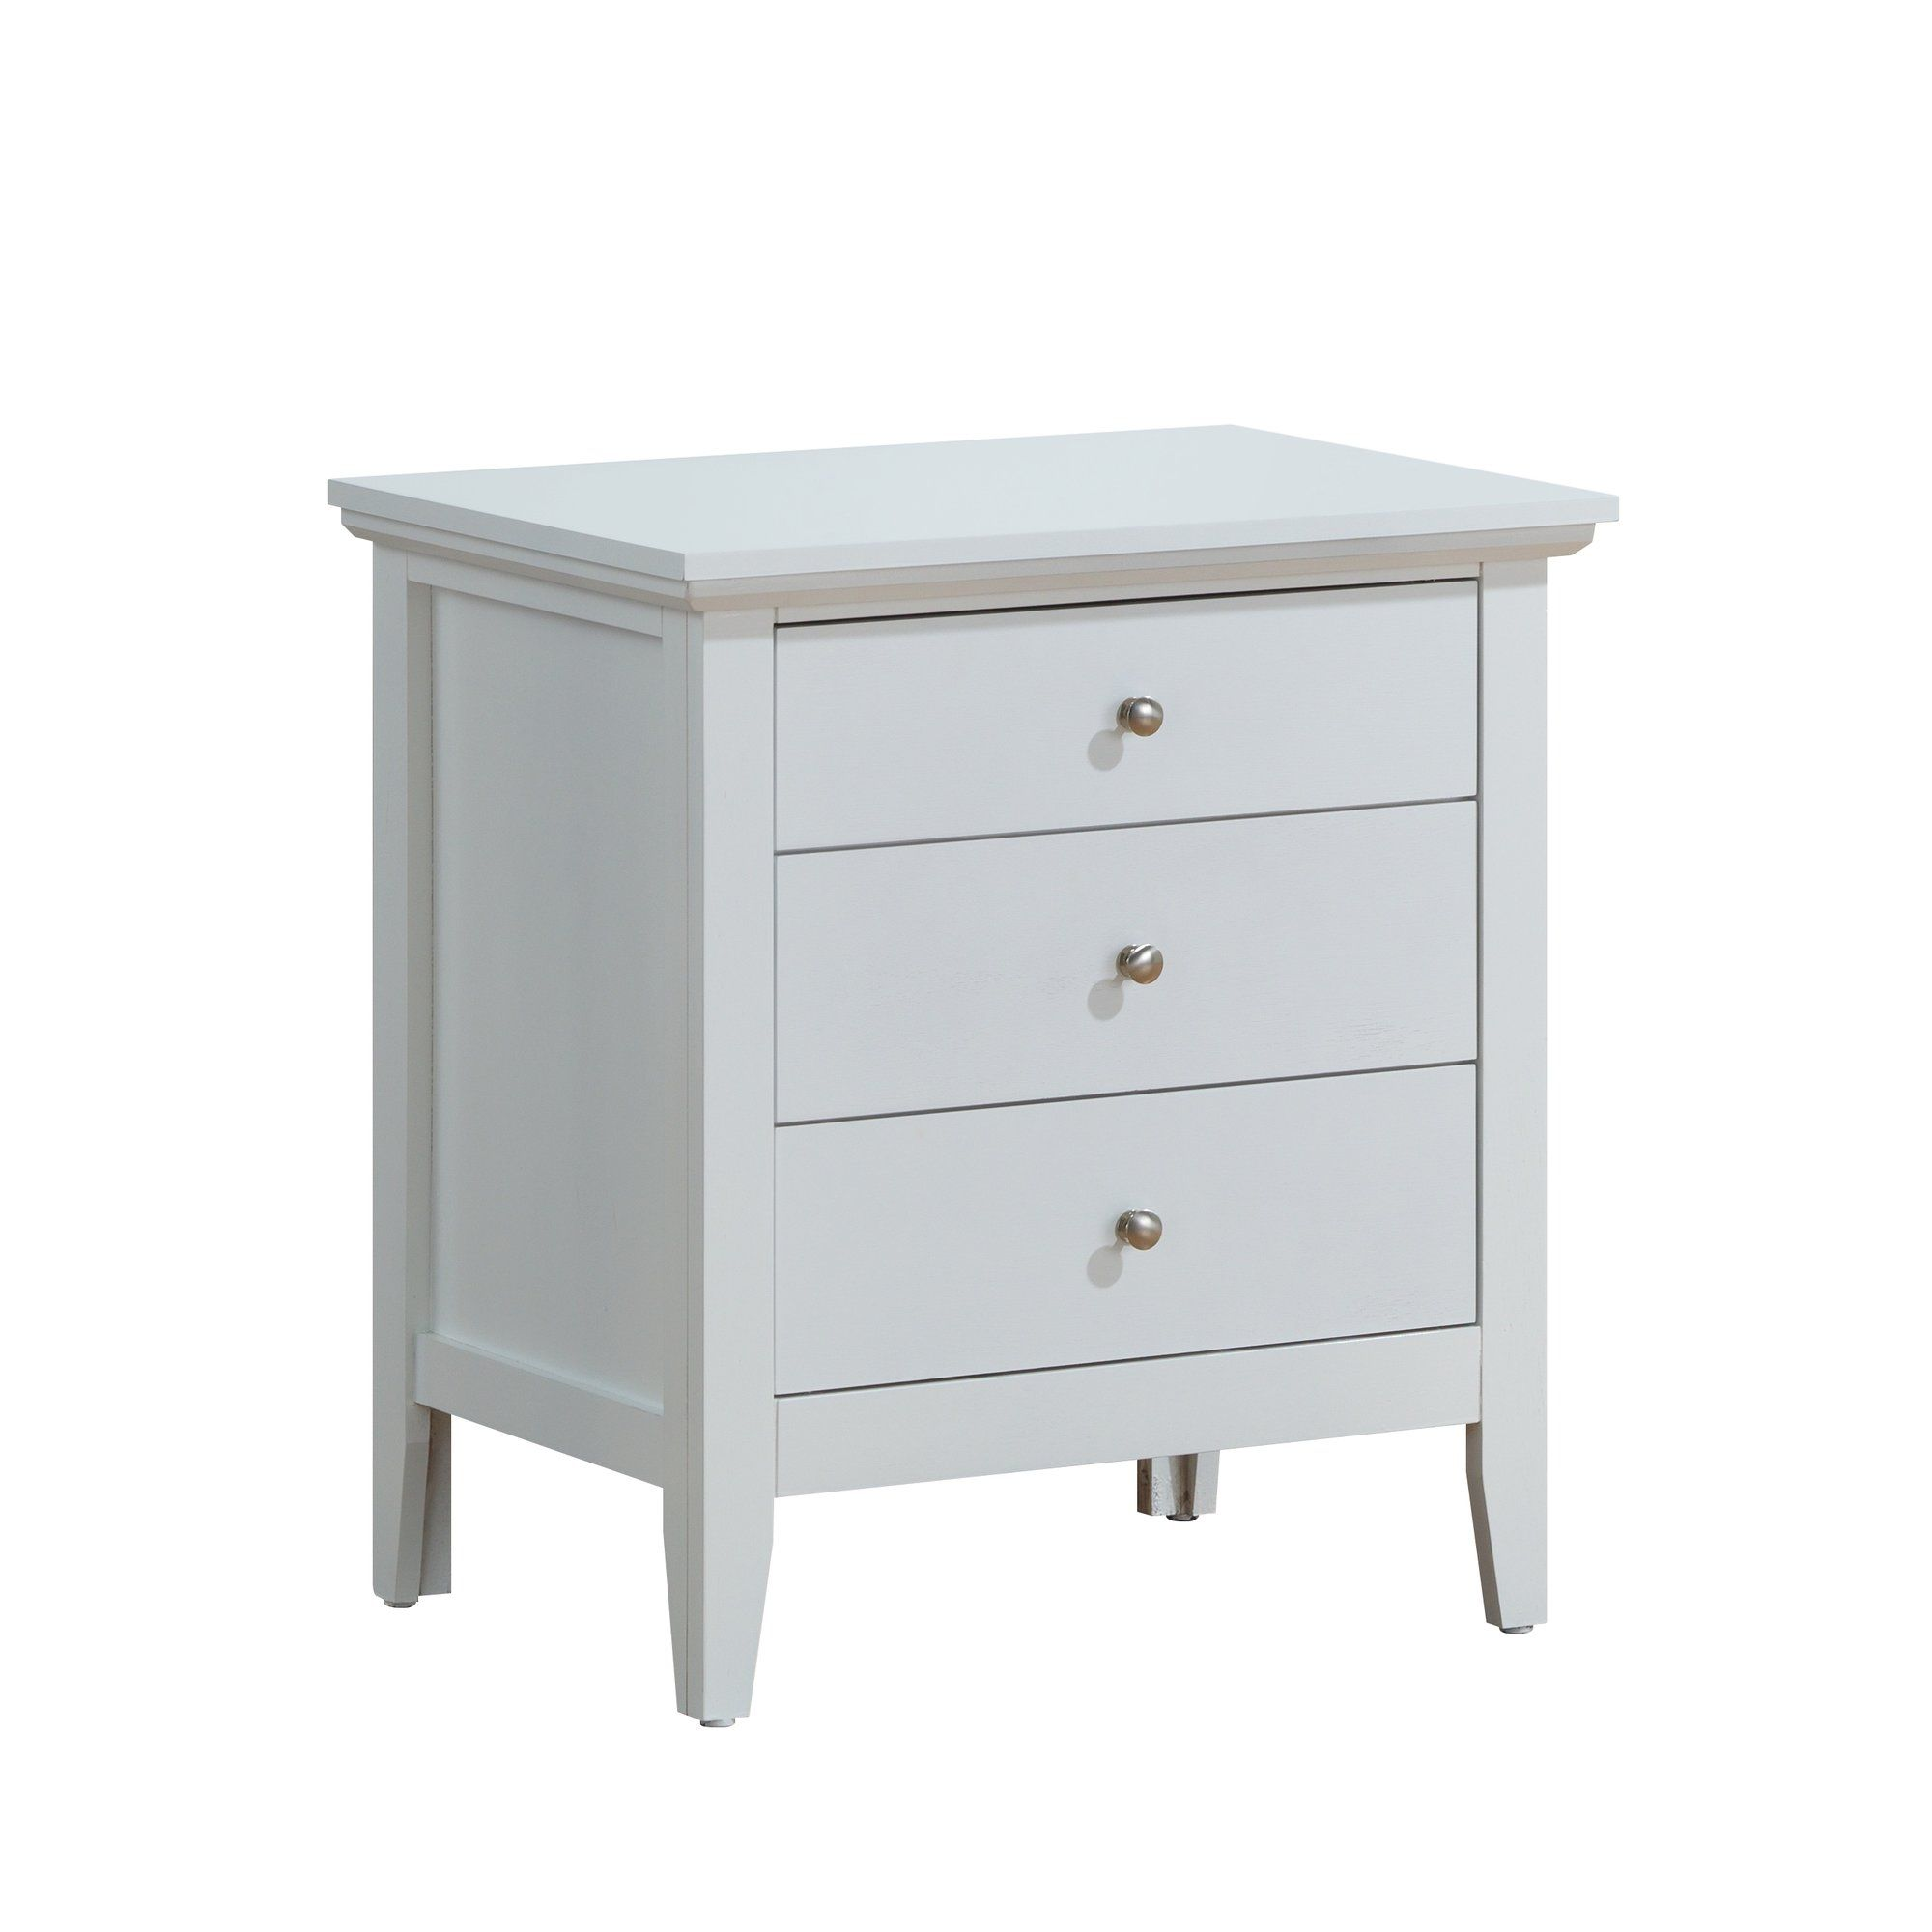 art nightstand furniture chest drawers gb koppang of ikea products storage en white drawer cm